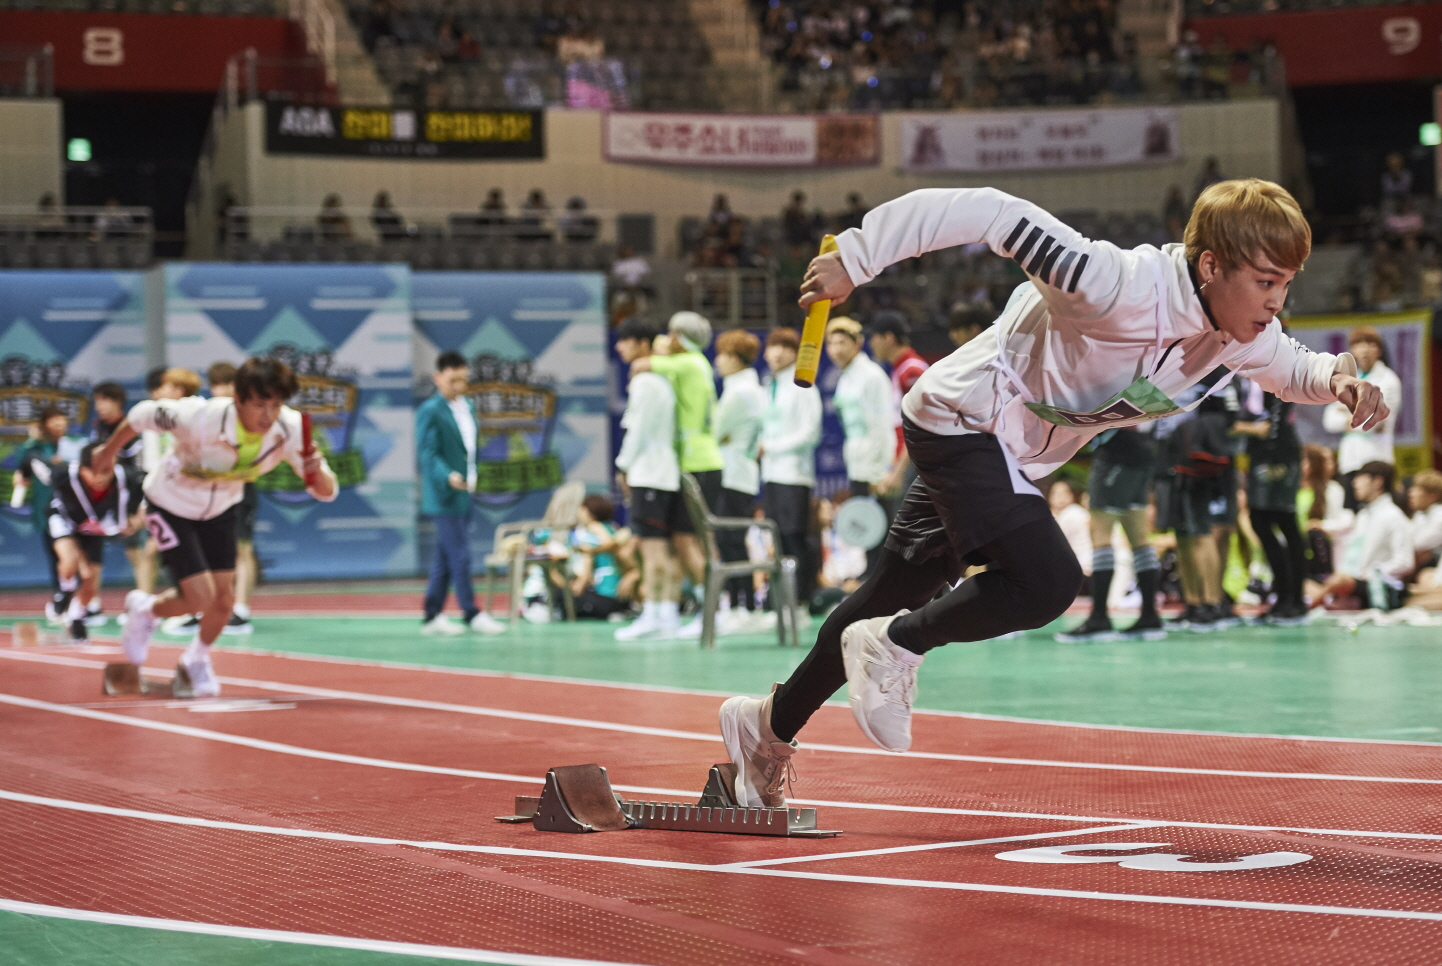 """Watch: BTS Wins Relay For The 3rd Time In A Row At """"2016 Idol Star Athletics Championships"""""""